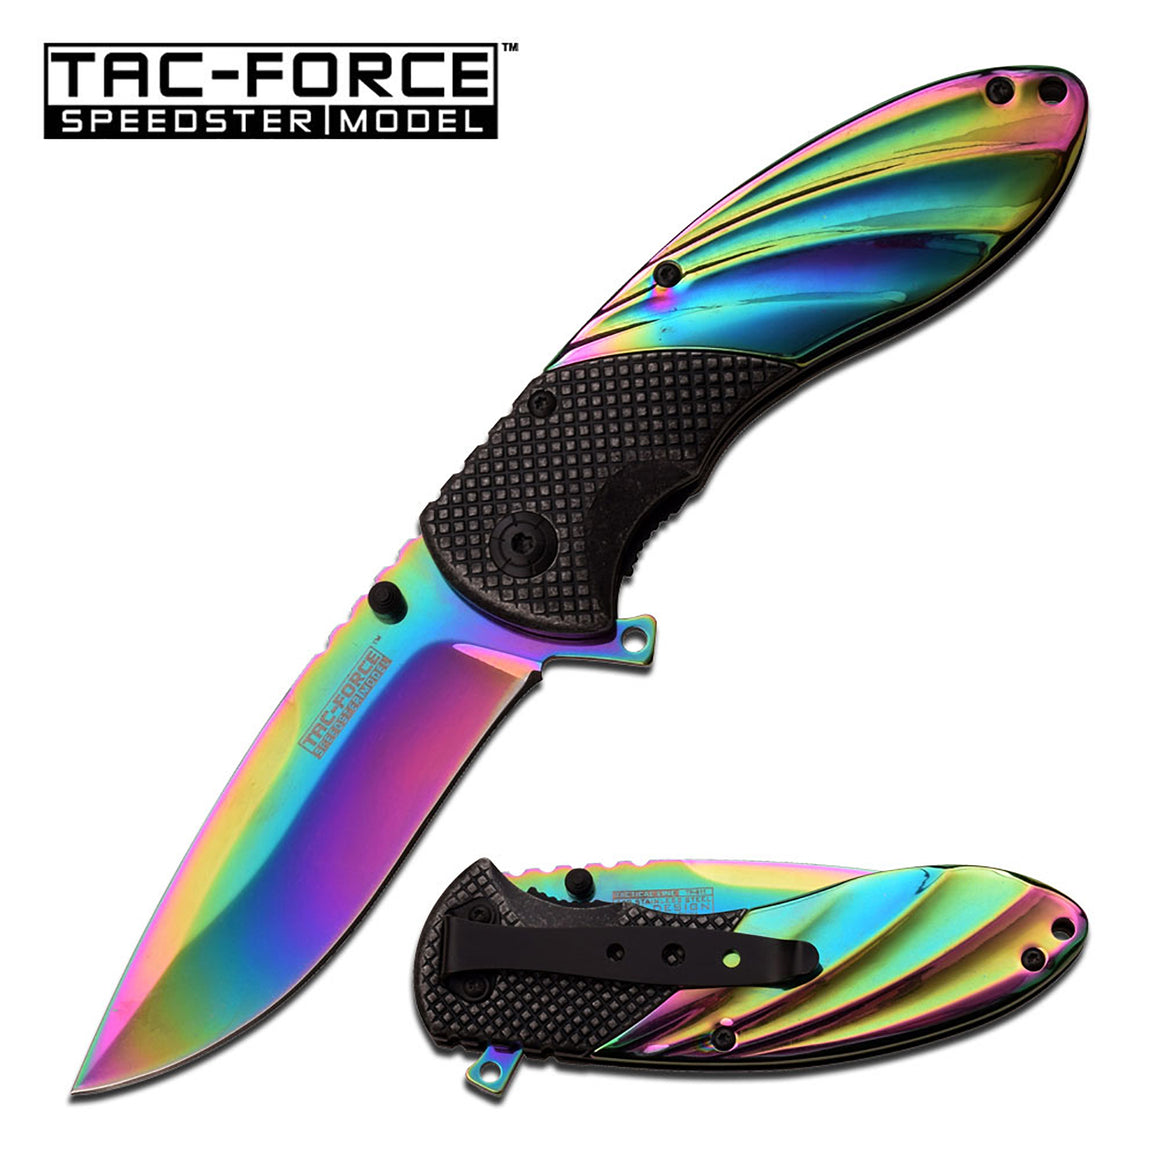 Tac-Force TF-911RB Spring Assisted Knife